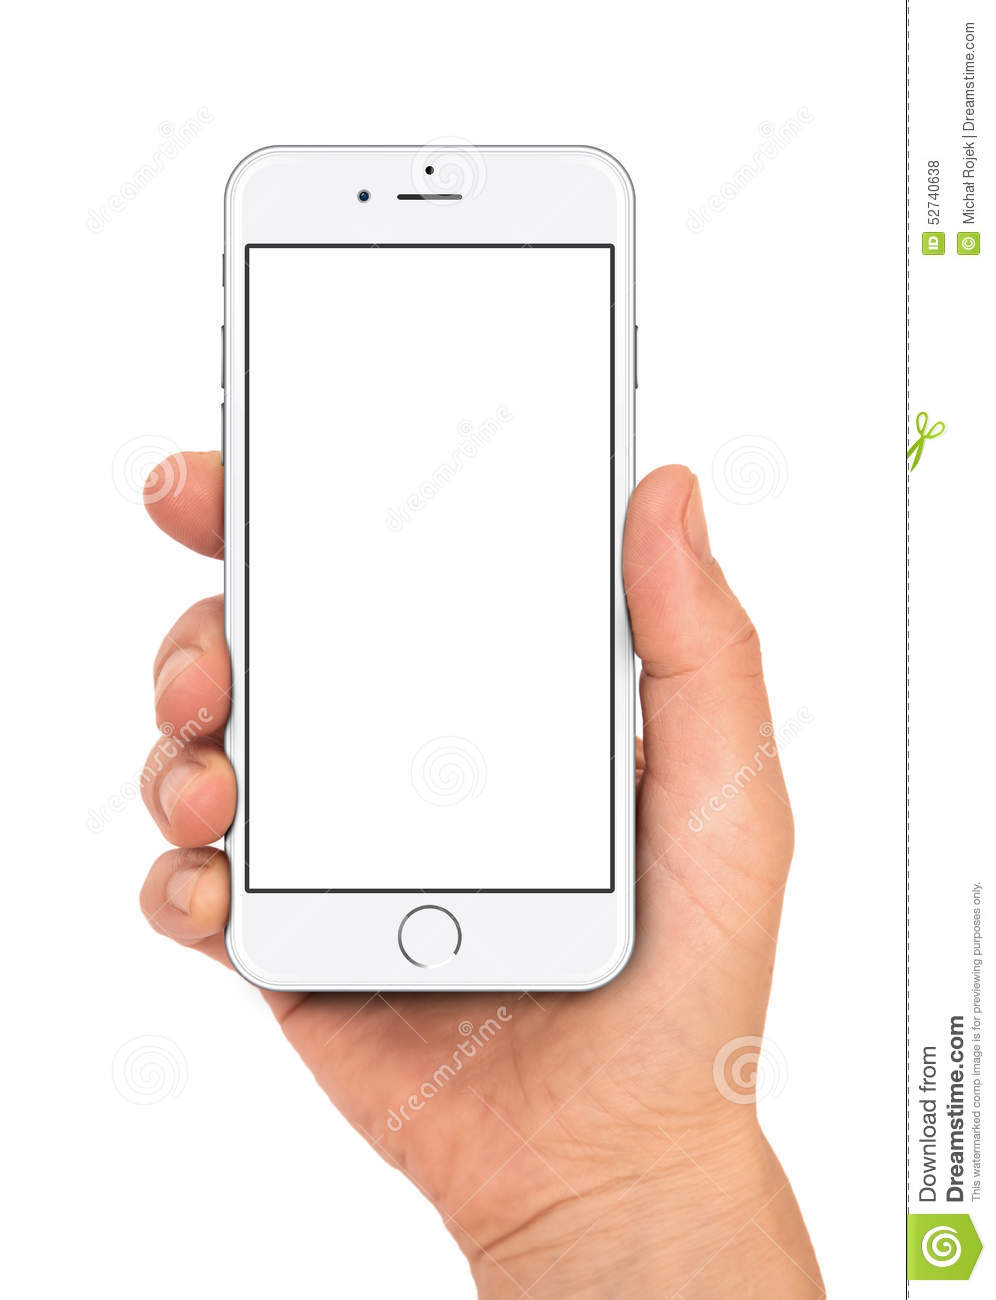 IPhone 6 in woman hand